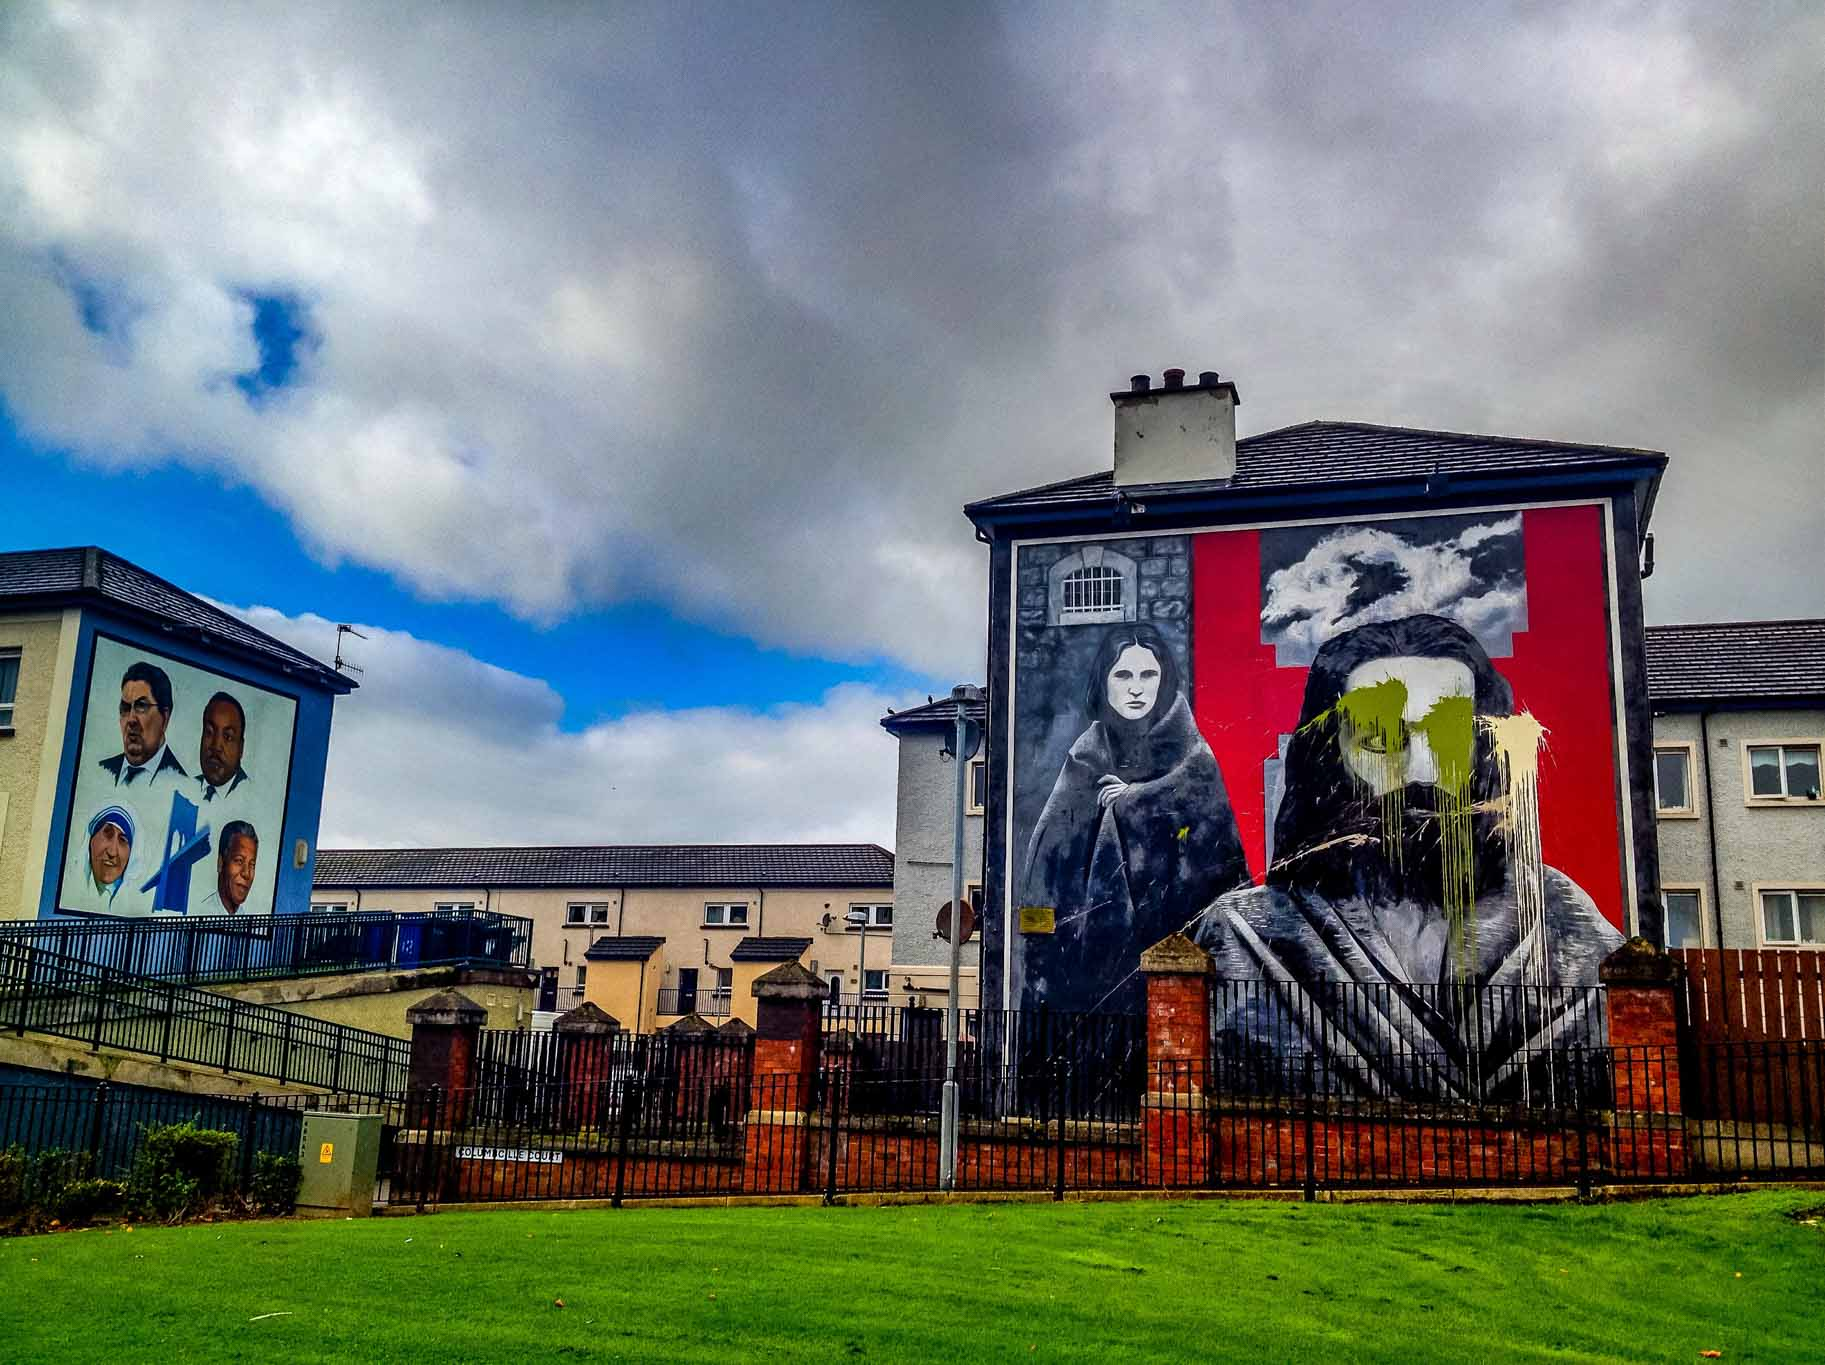 Two of the IRA murals in Derry -- The Hungers Strikers mural with vandalism and the John Hume mural